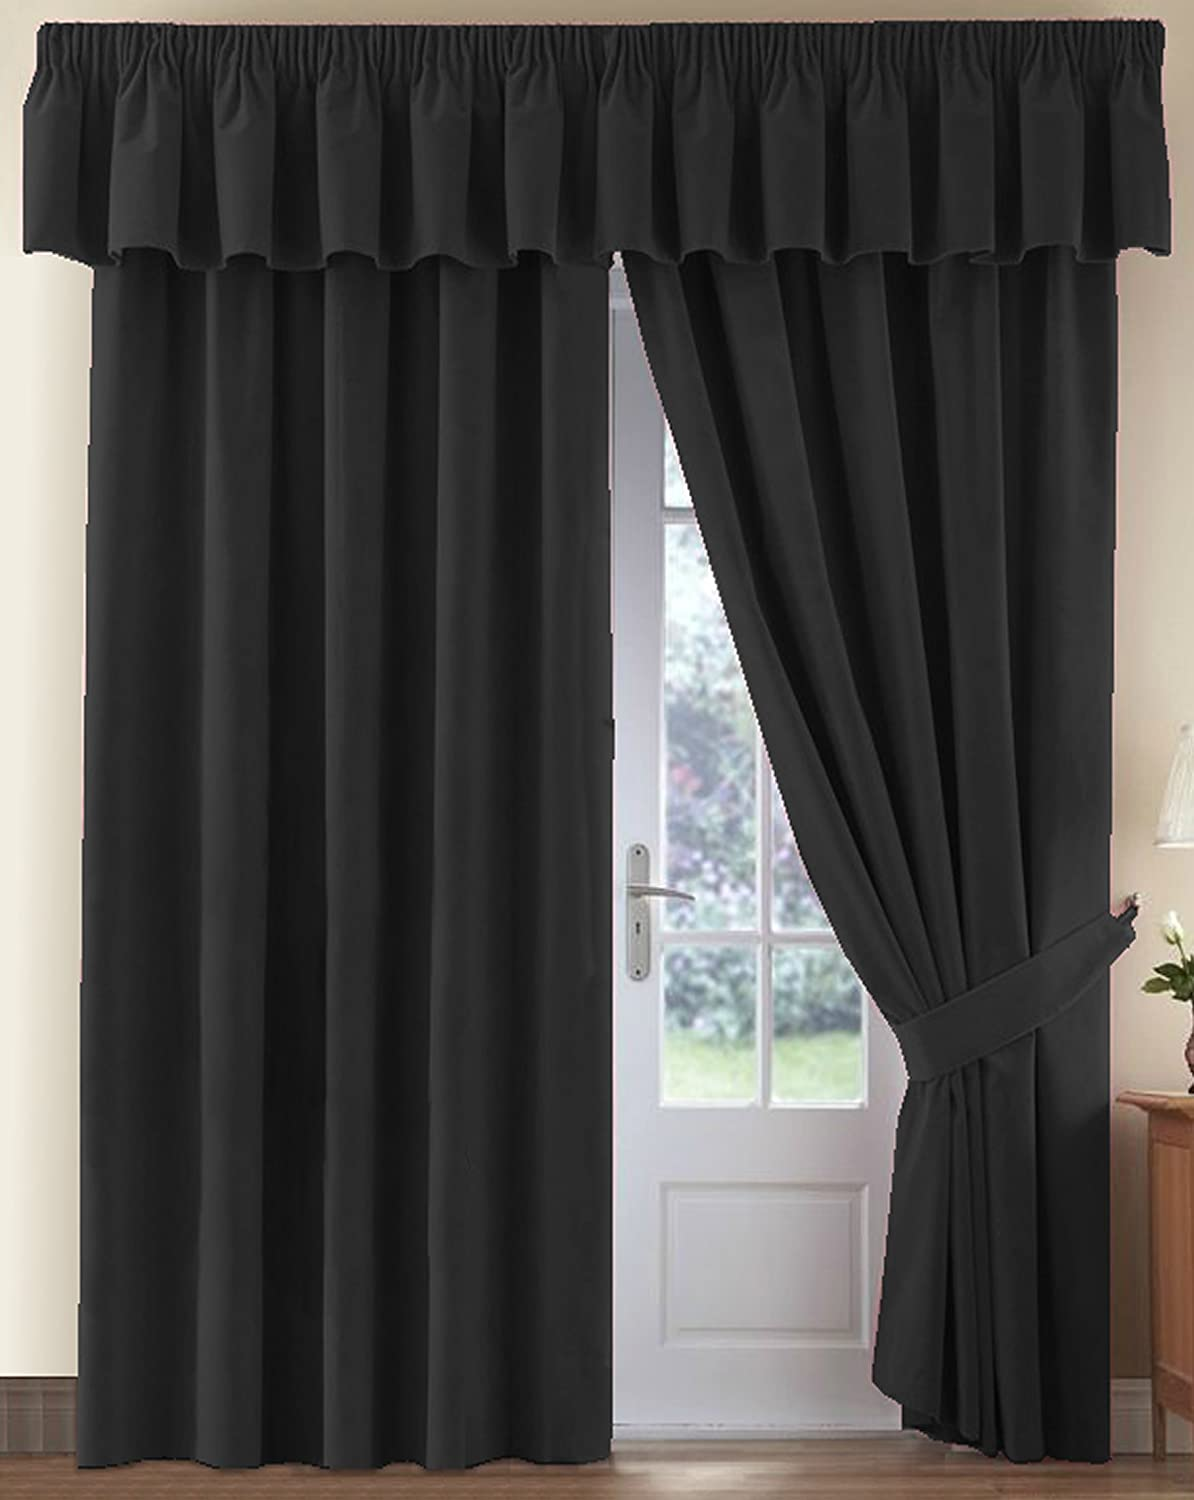 Thermal Velour Velvet Curtains Finished In Black 46 Wide X 72 Drop Amazoncouk Kitchen Home